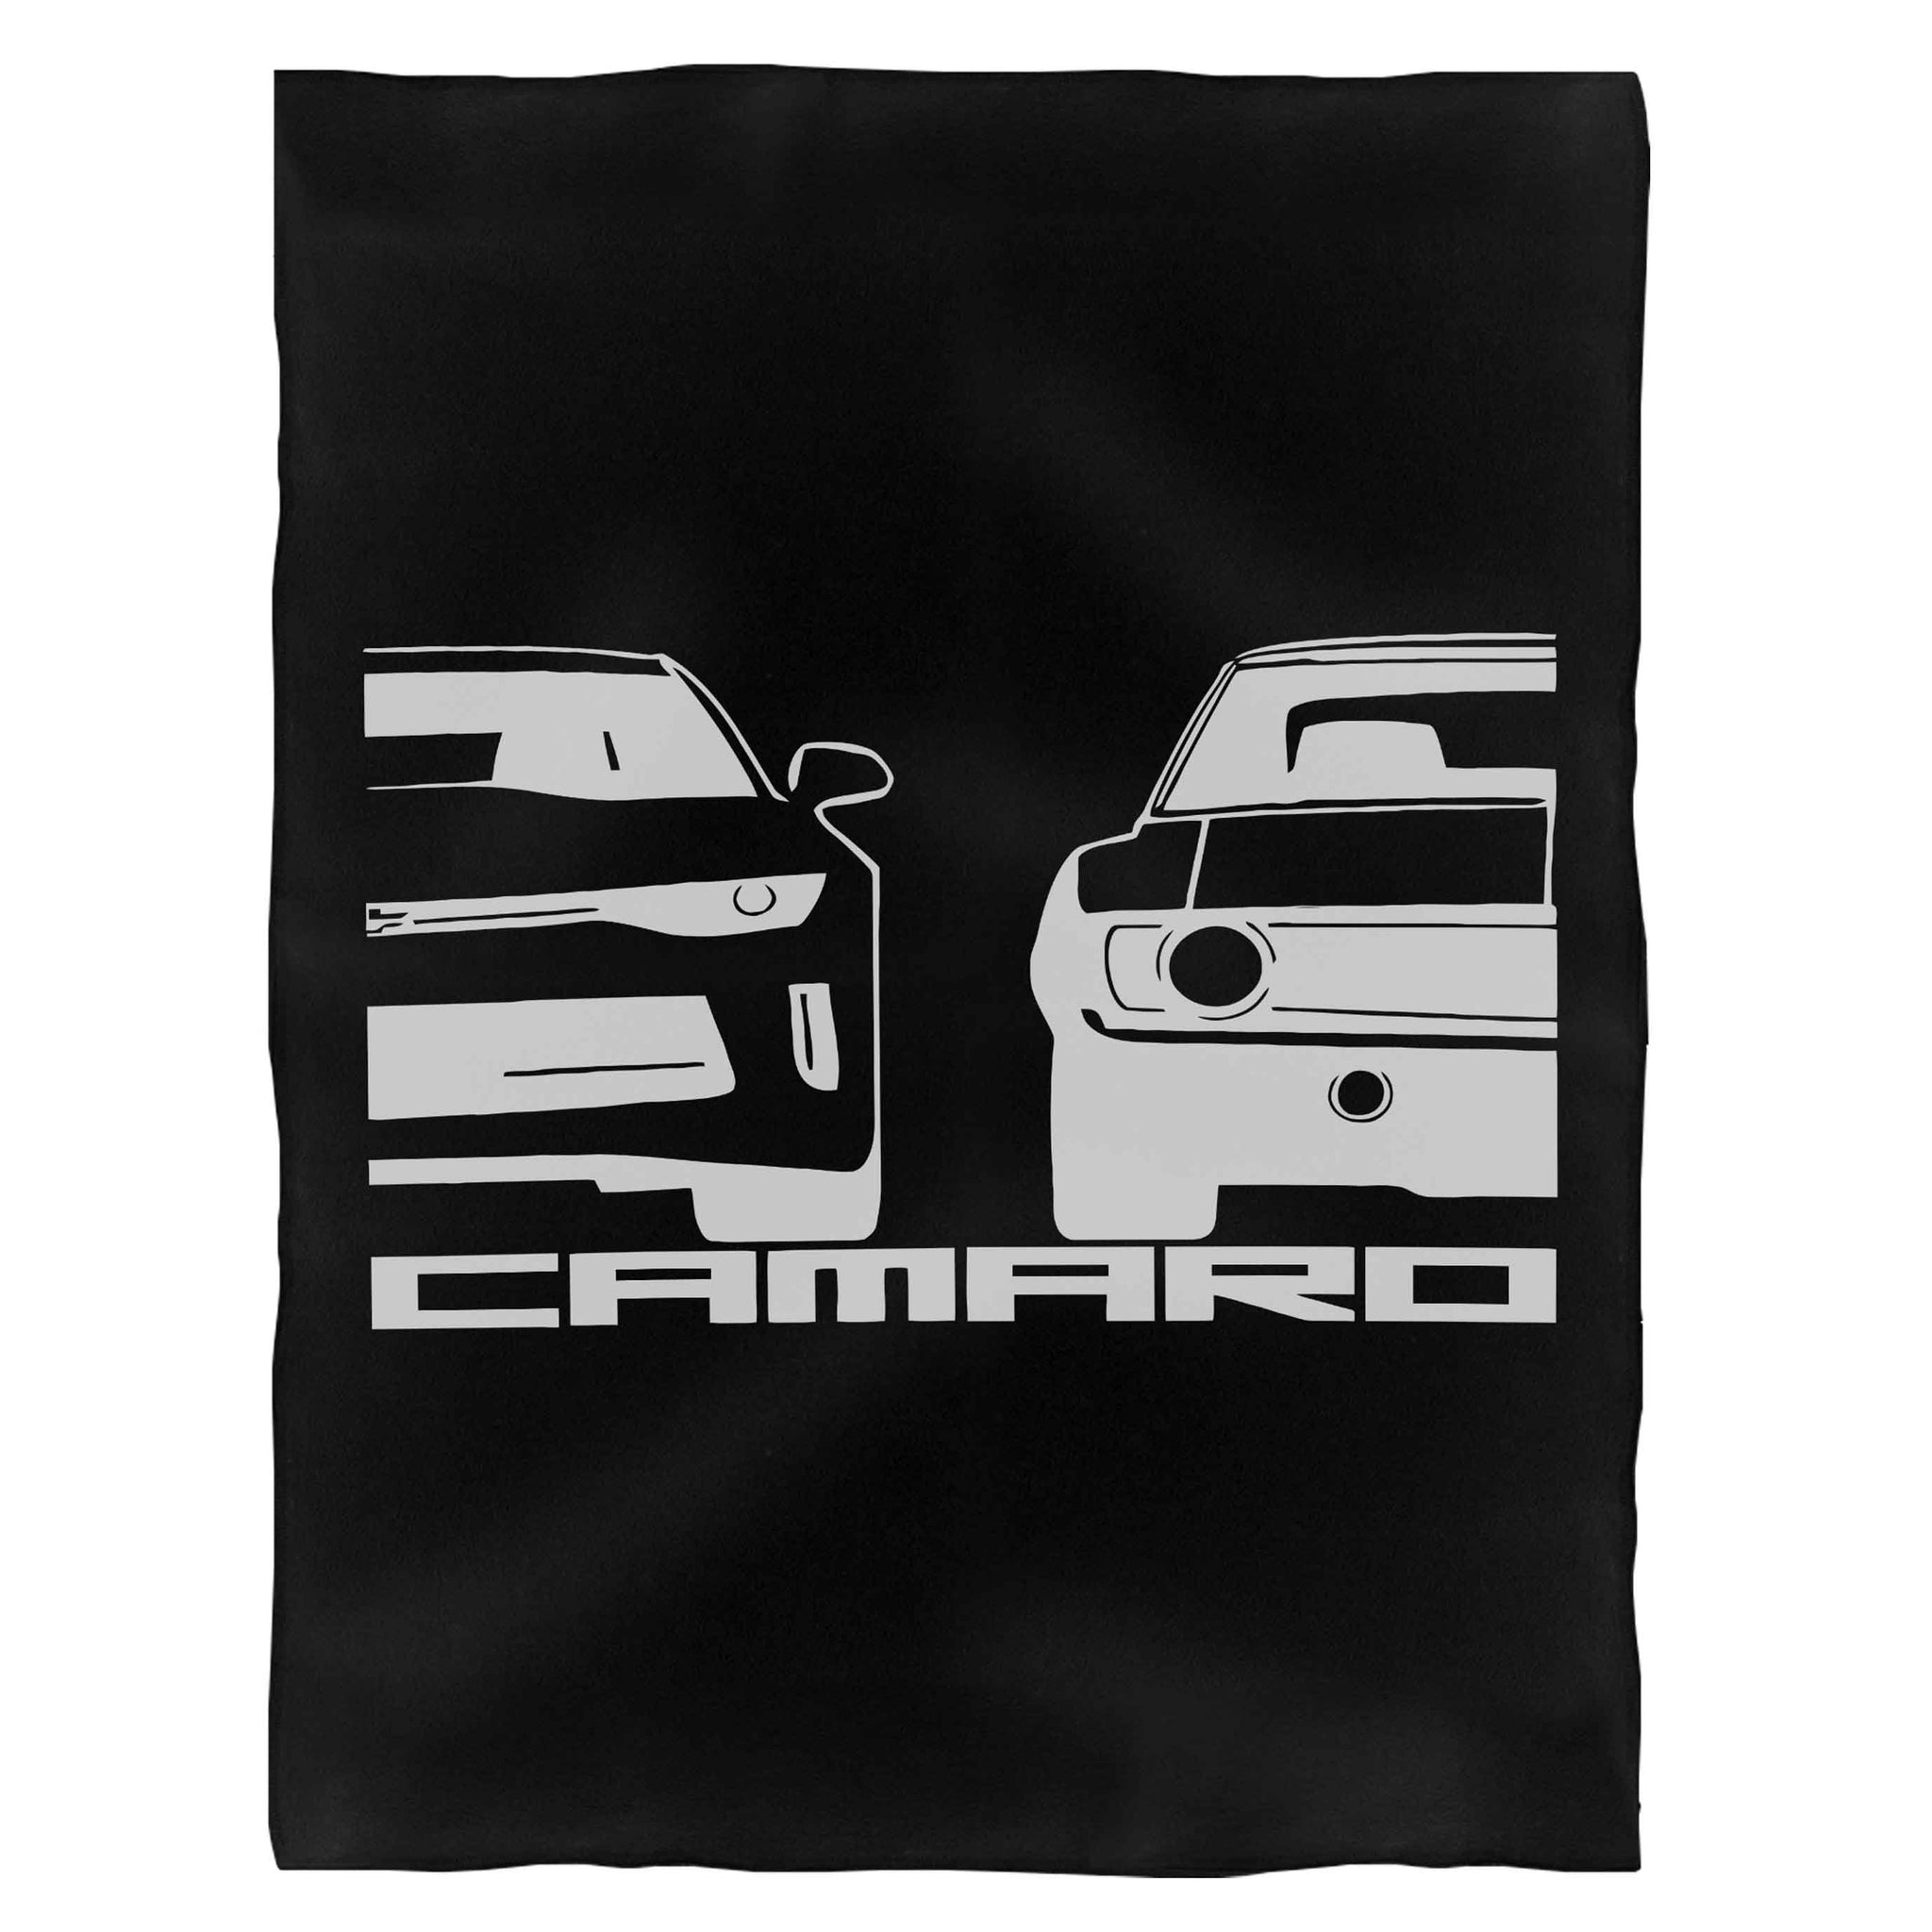 Chevy Camaro Fleece Blanket